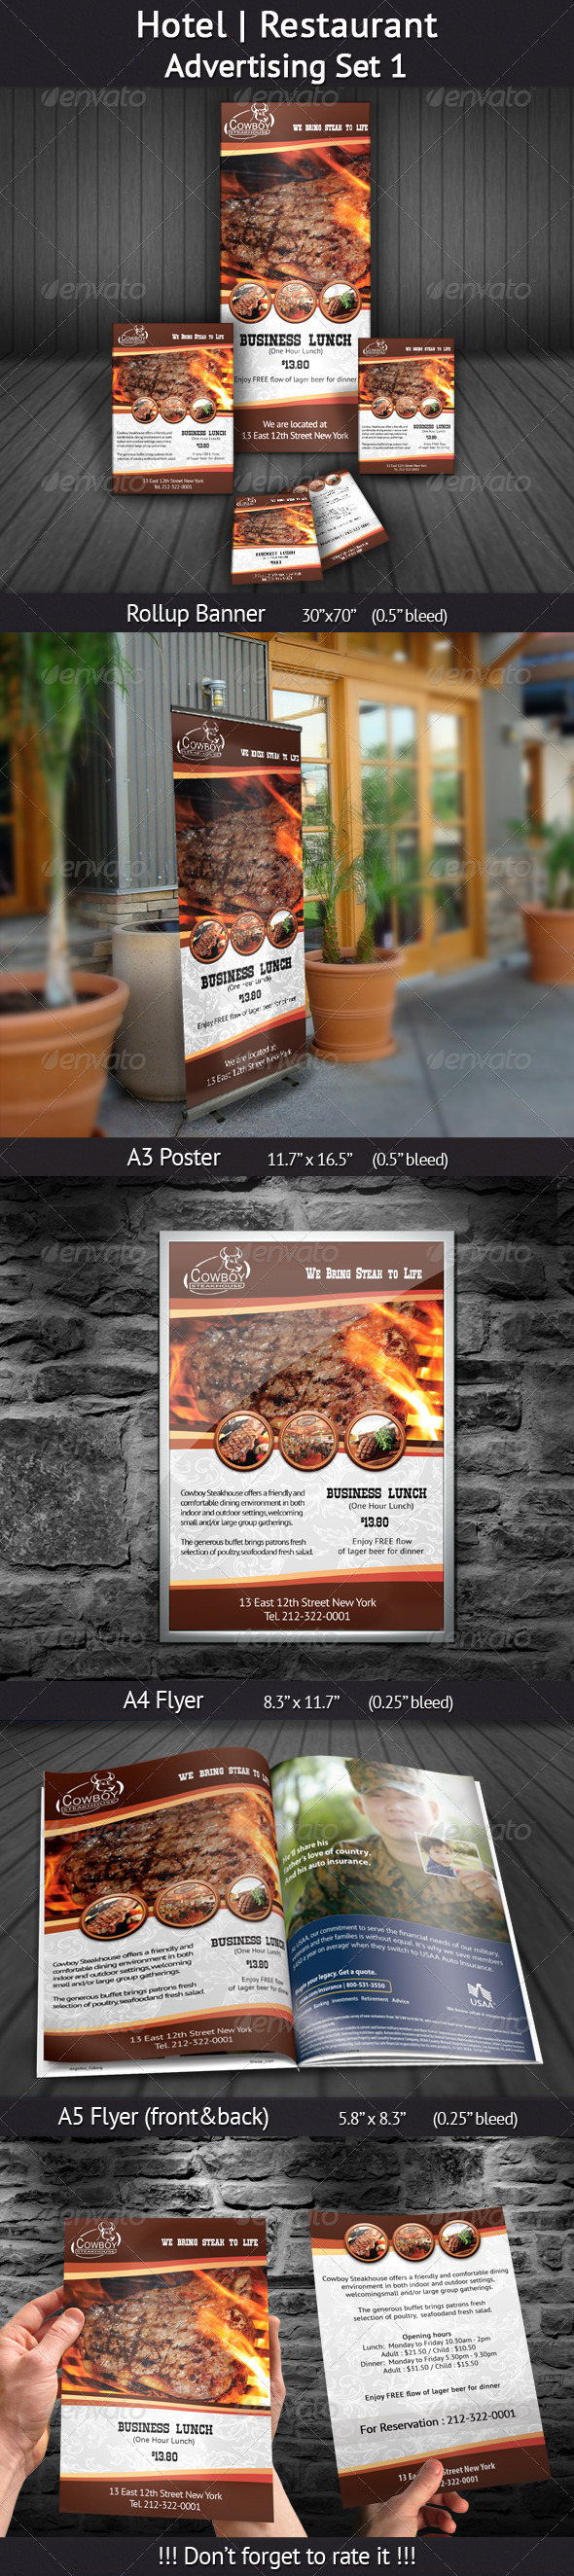 GraphicRiver Hotel Restaurant Advertising Set 1 4567042